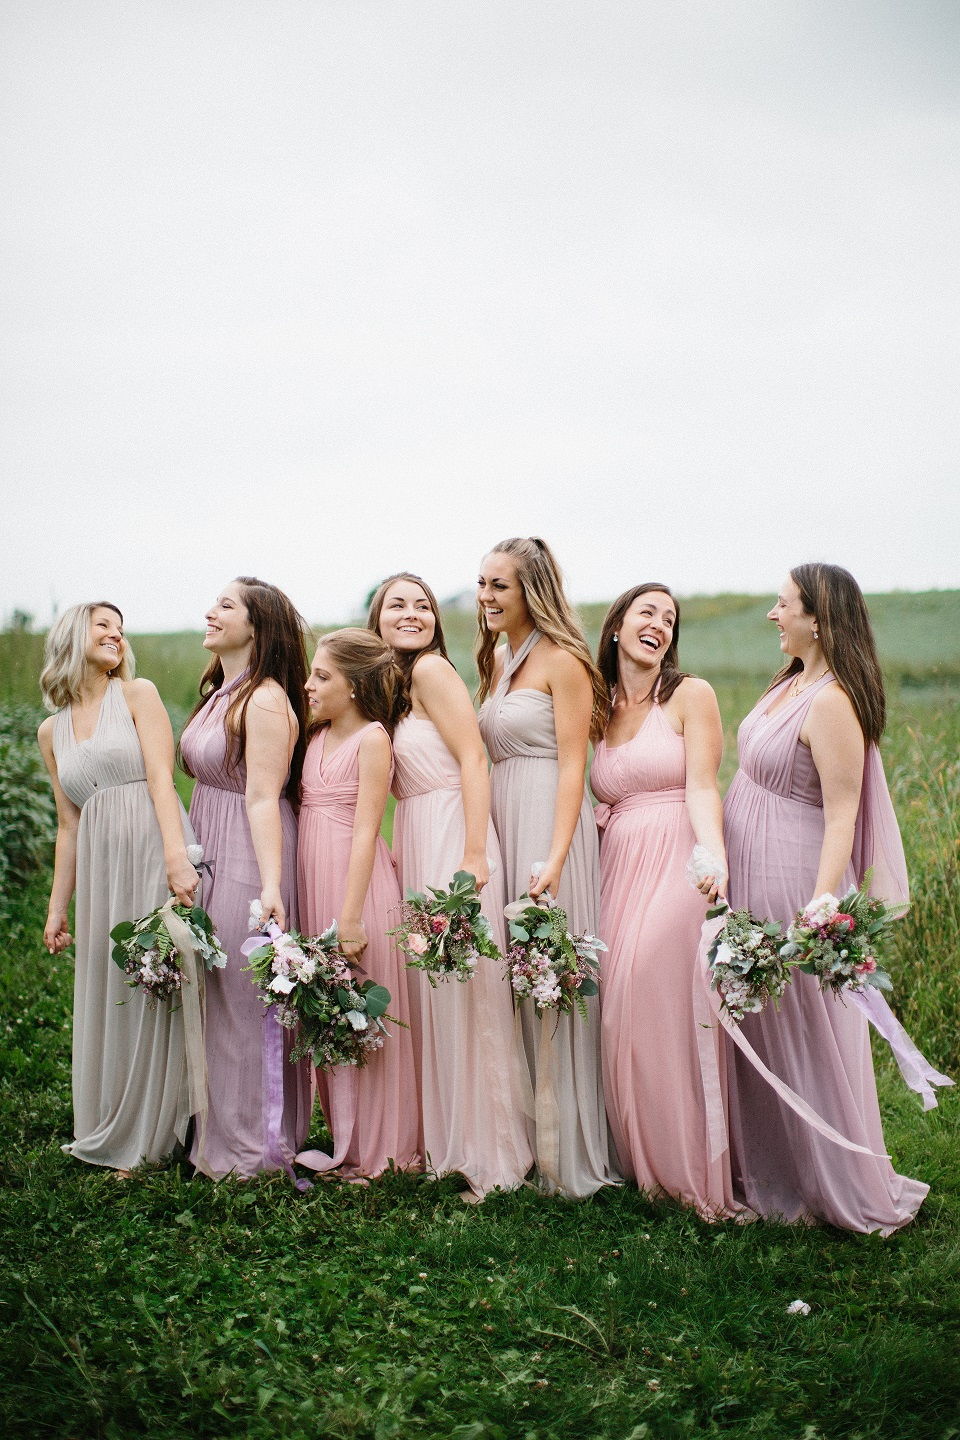 Bride Meghan's bridesmaids in shades of pink and purple